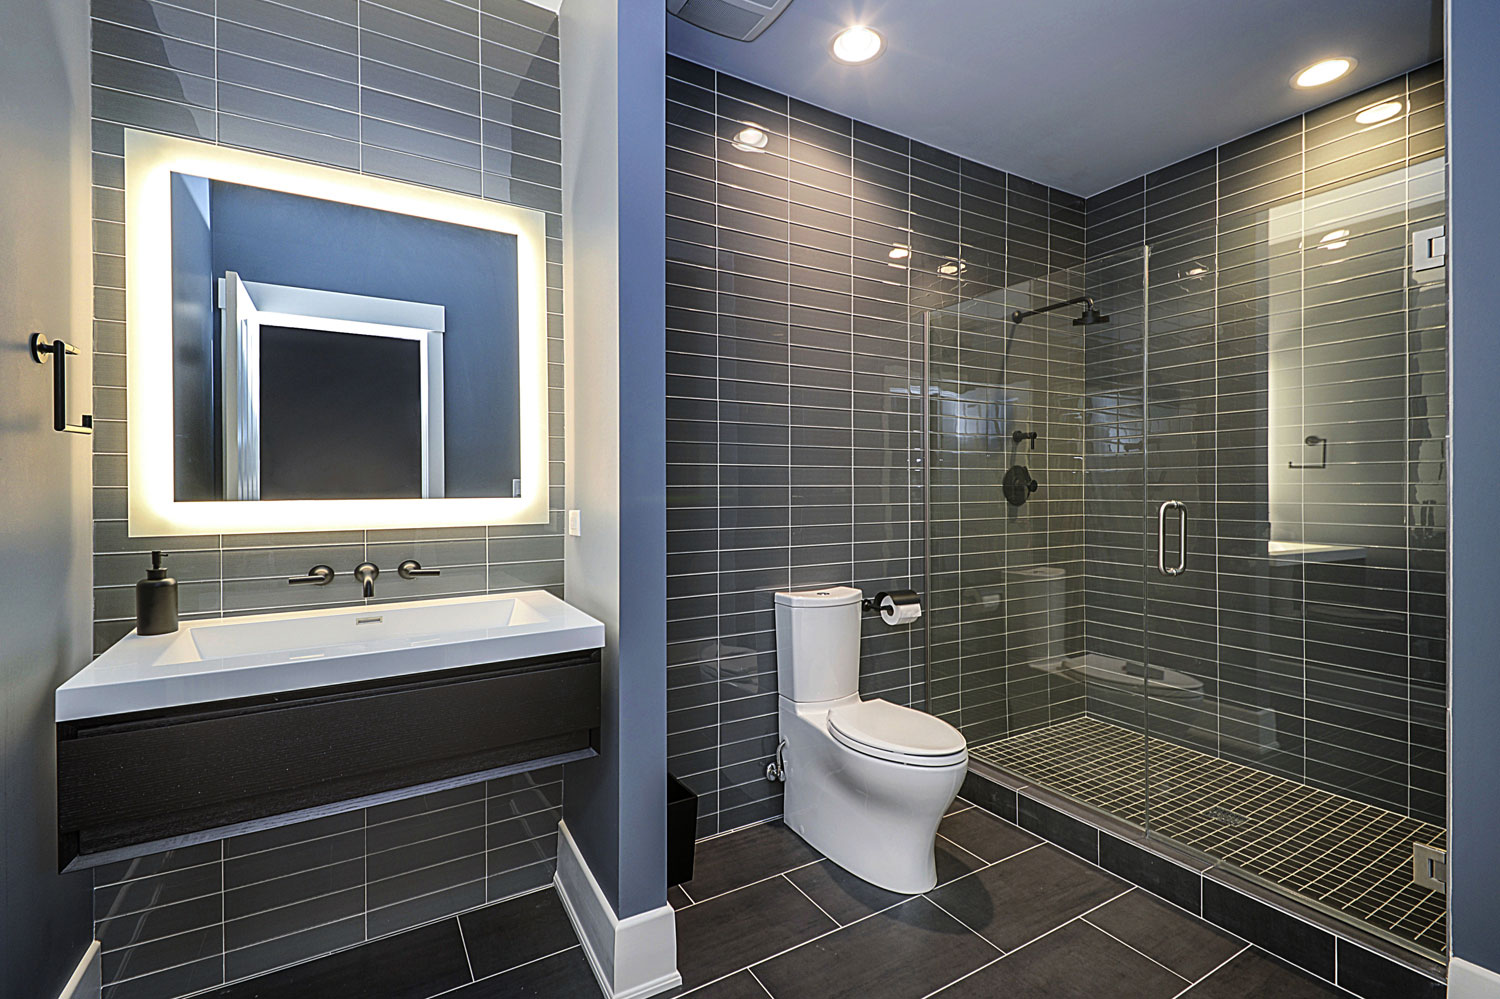 Bathroom Remodeling Naperville sidd & nisha's hall bathroom remodel pictures | home remodeling